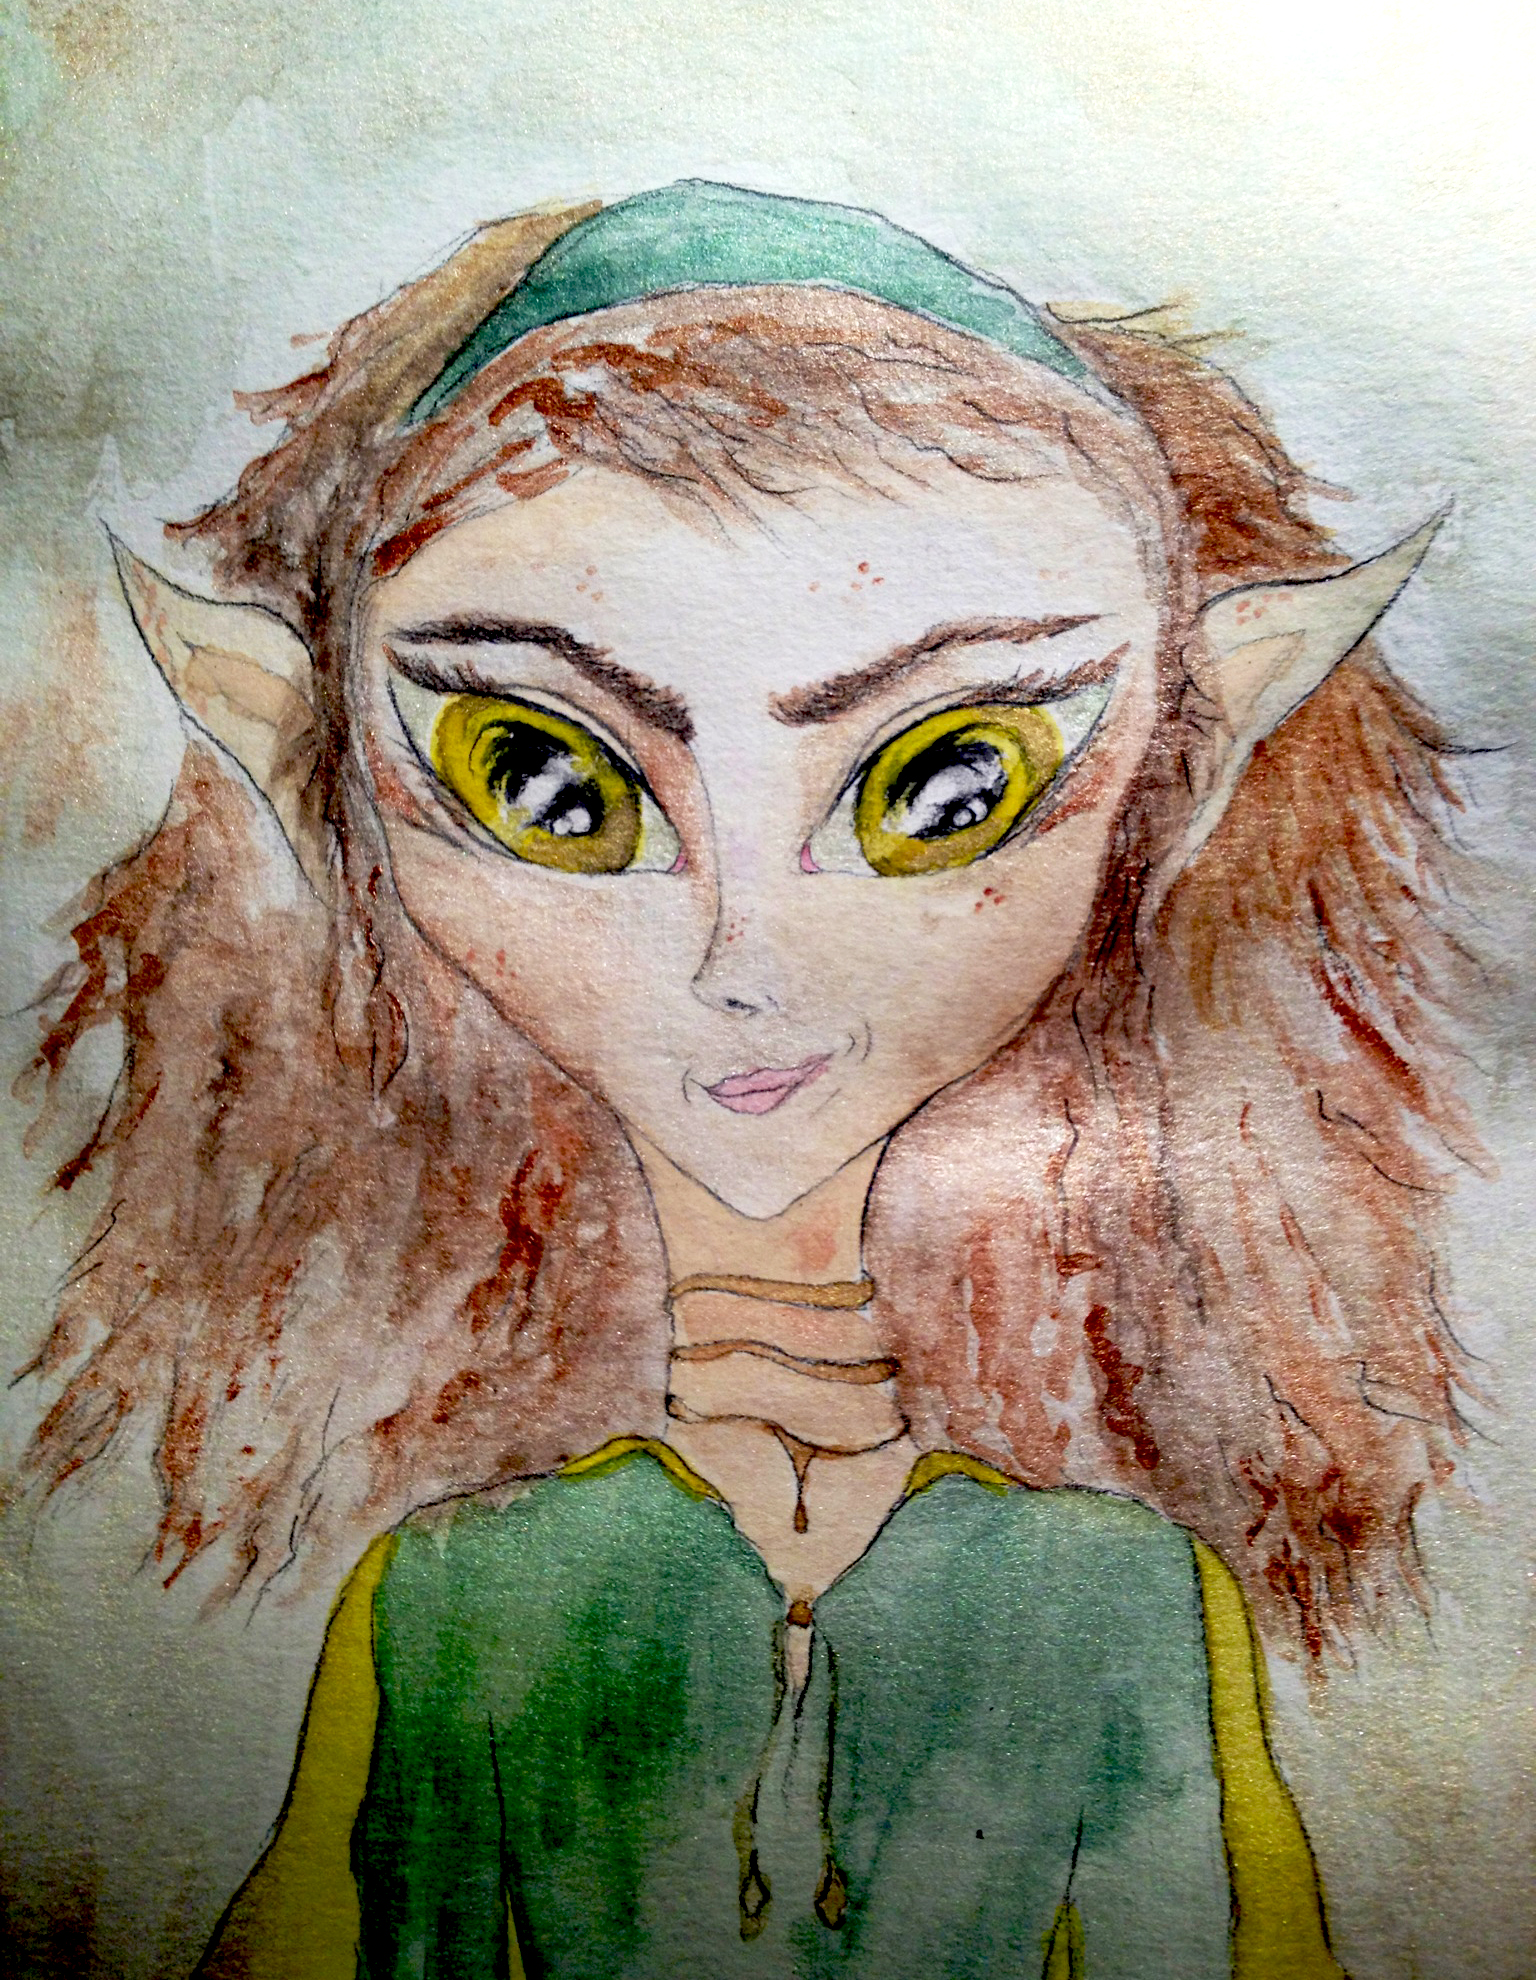 Portrait of Willa Hilliscrissing an elven alien, a human from the future.